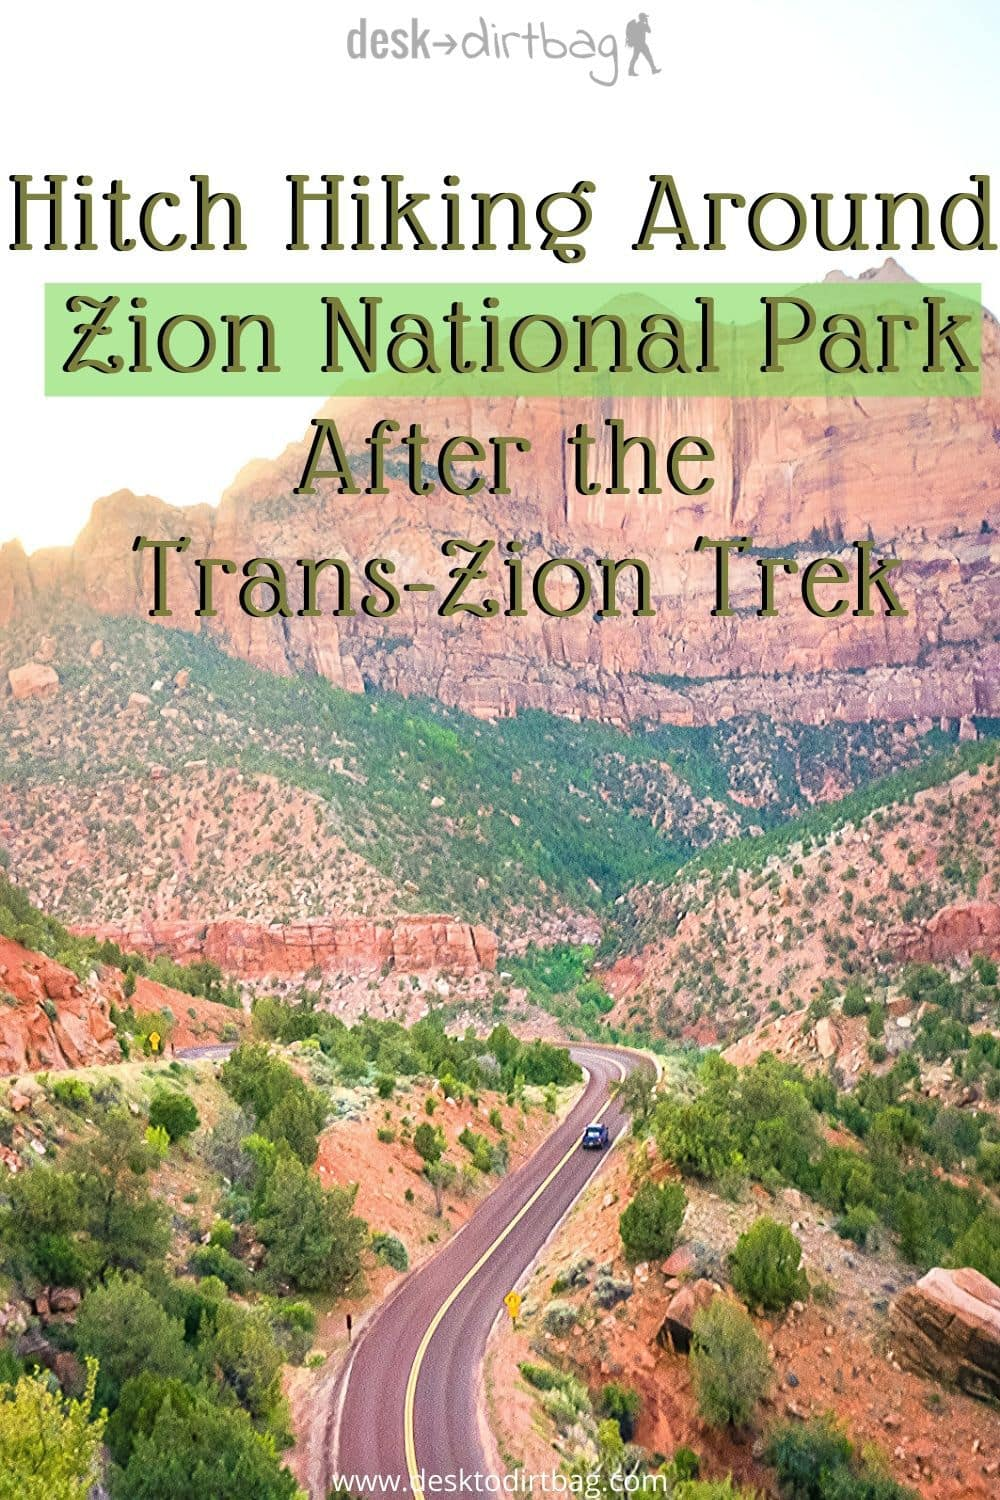 Hitch Hiking Around Zion National Park After the Trans-Zion Trek utah, photography, featured